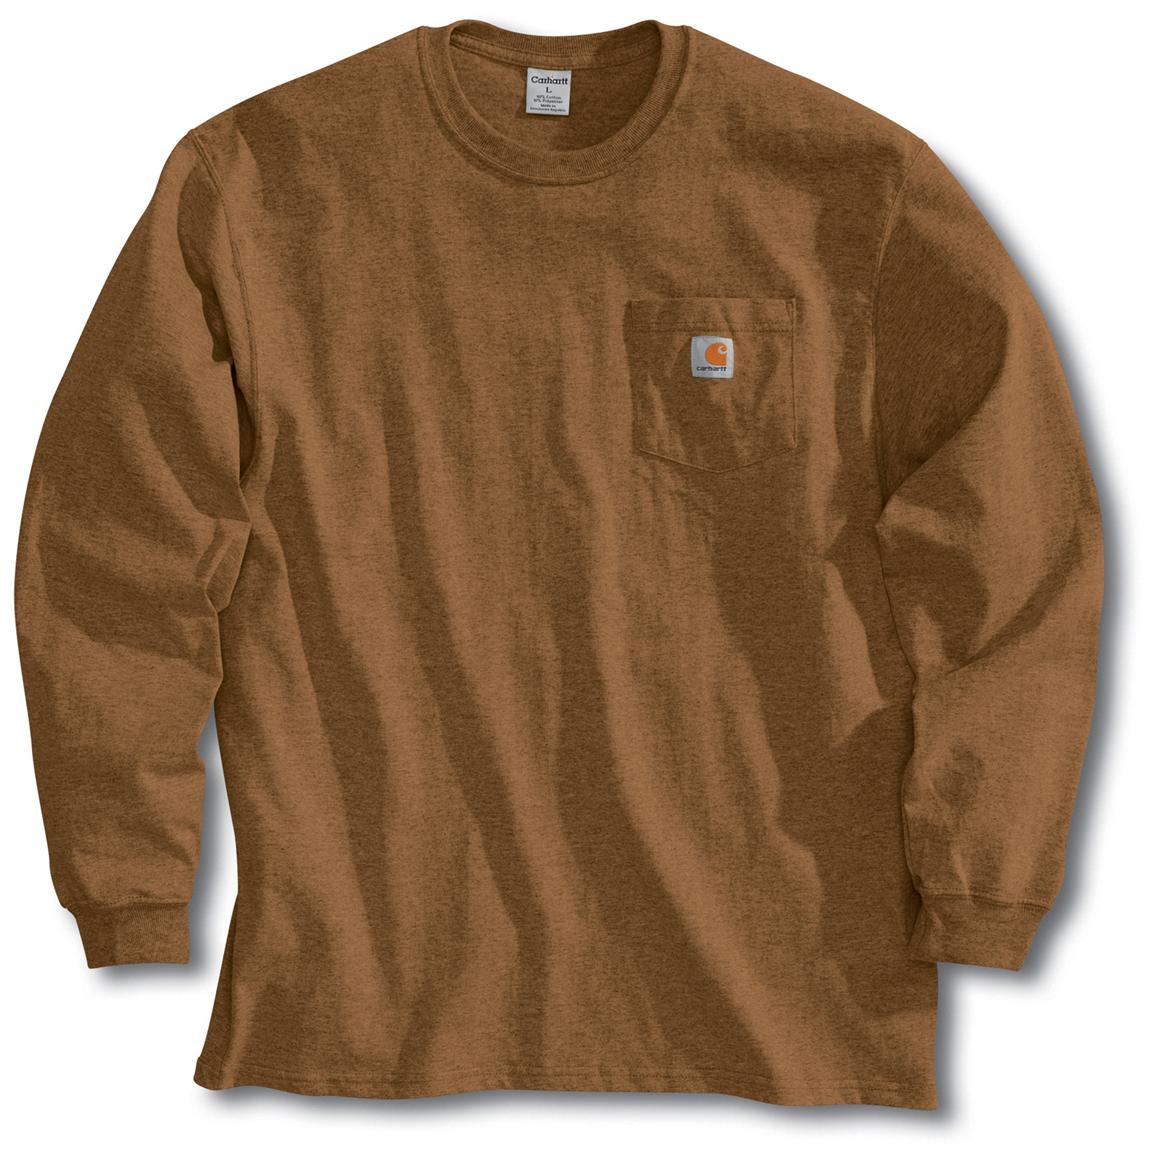 Men's Carhartt Workwear Long-Sleeve Pocket T-Shirt, Brown